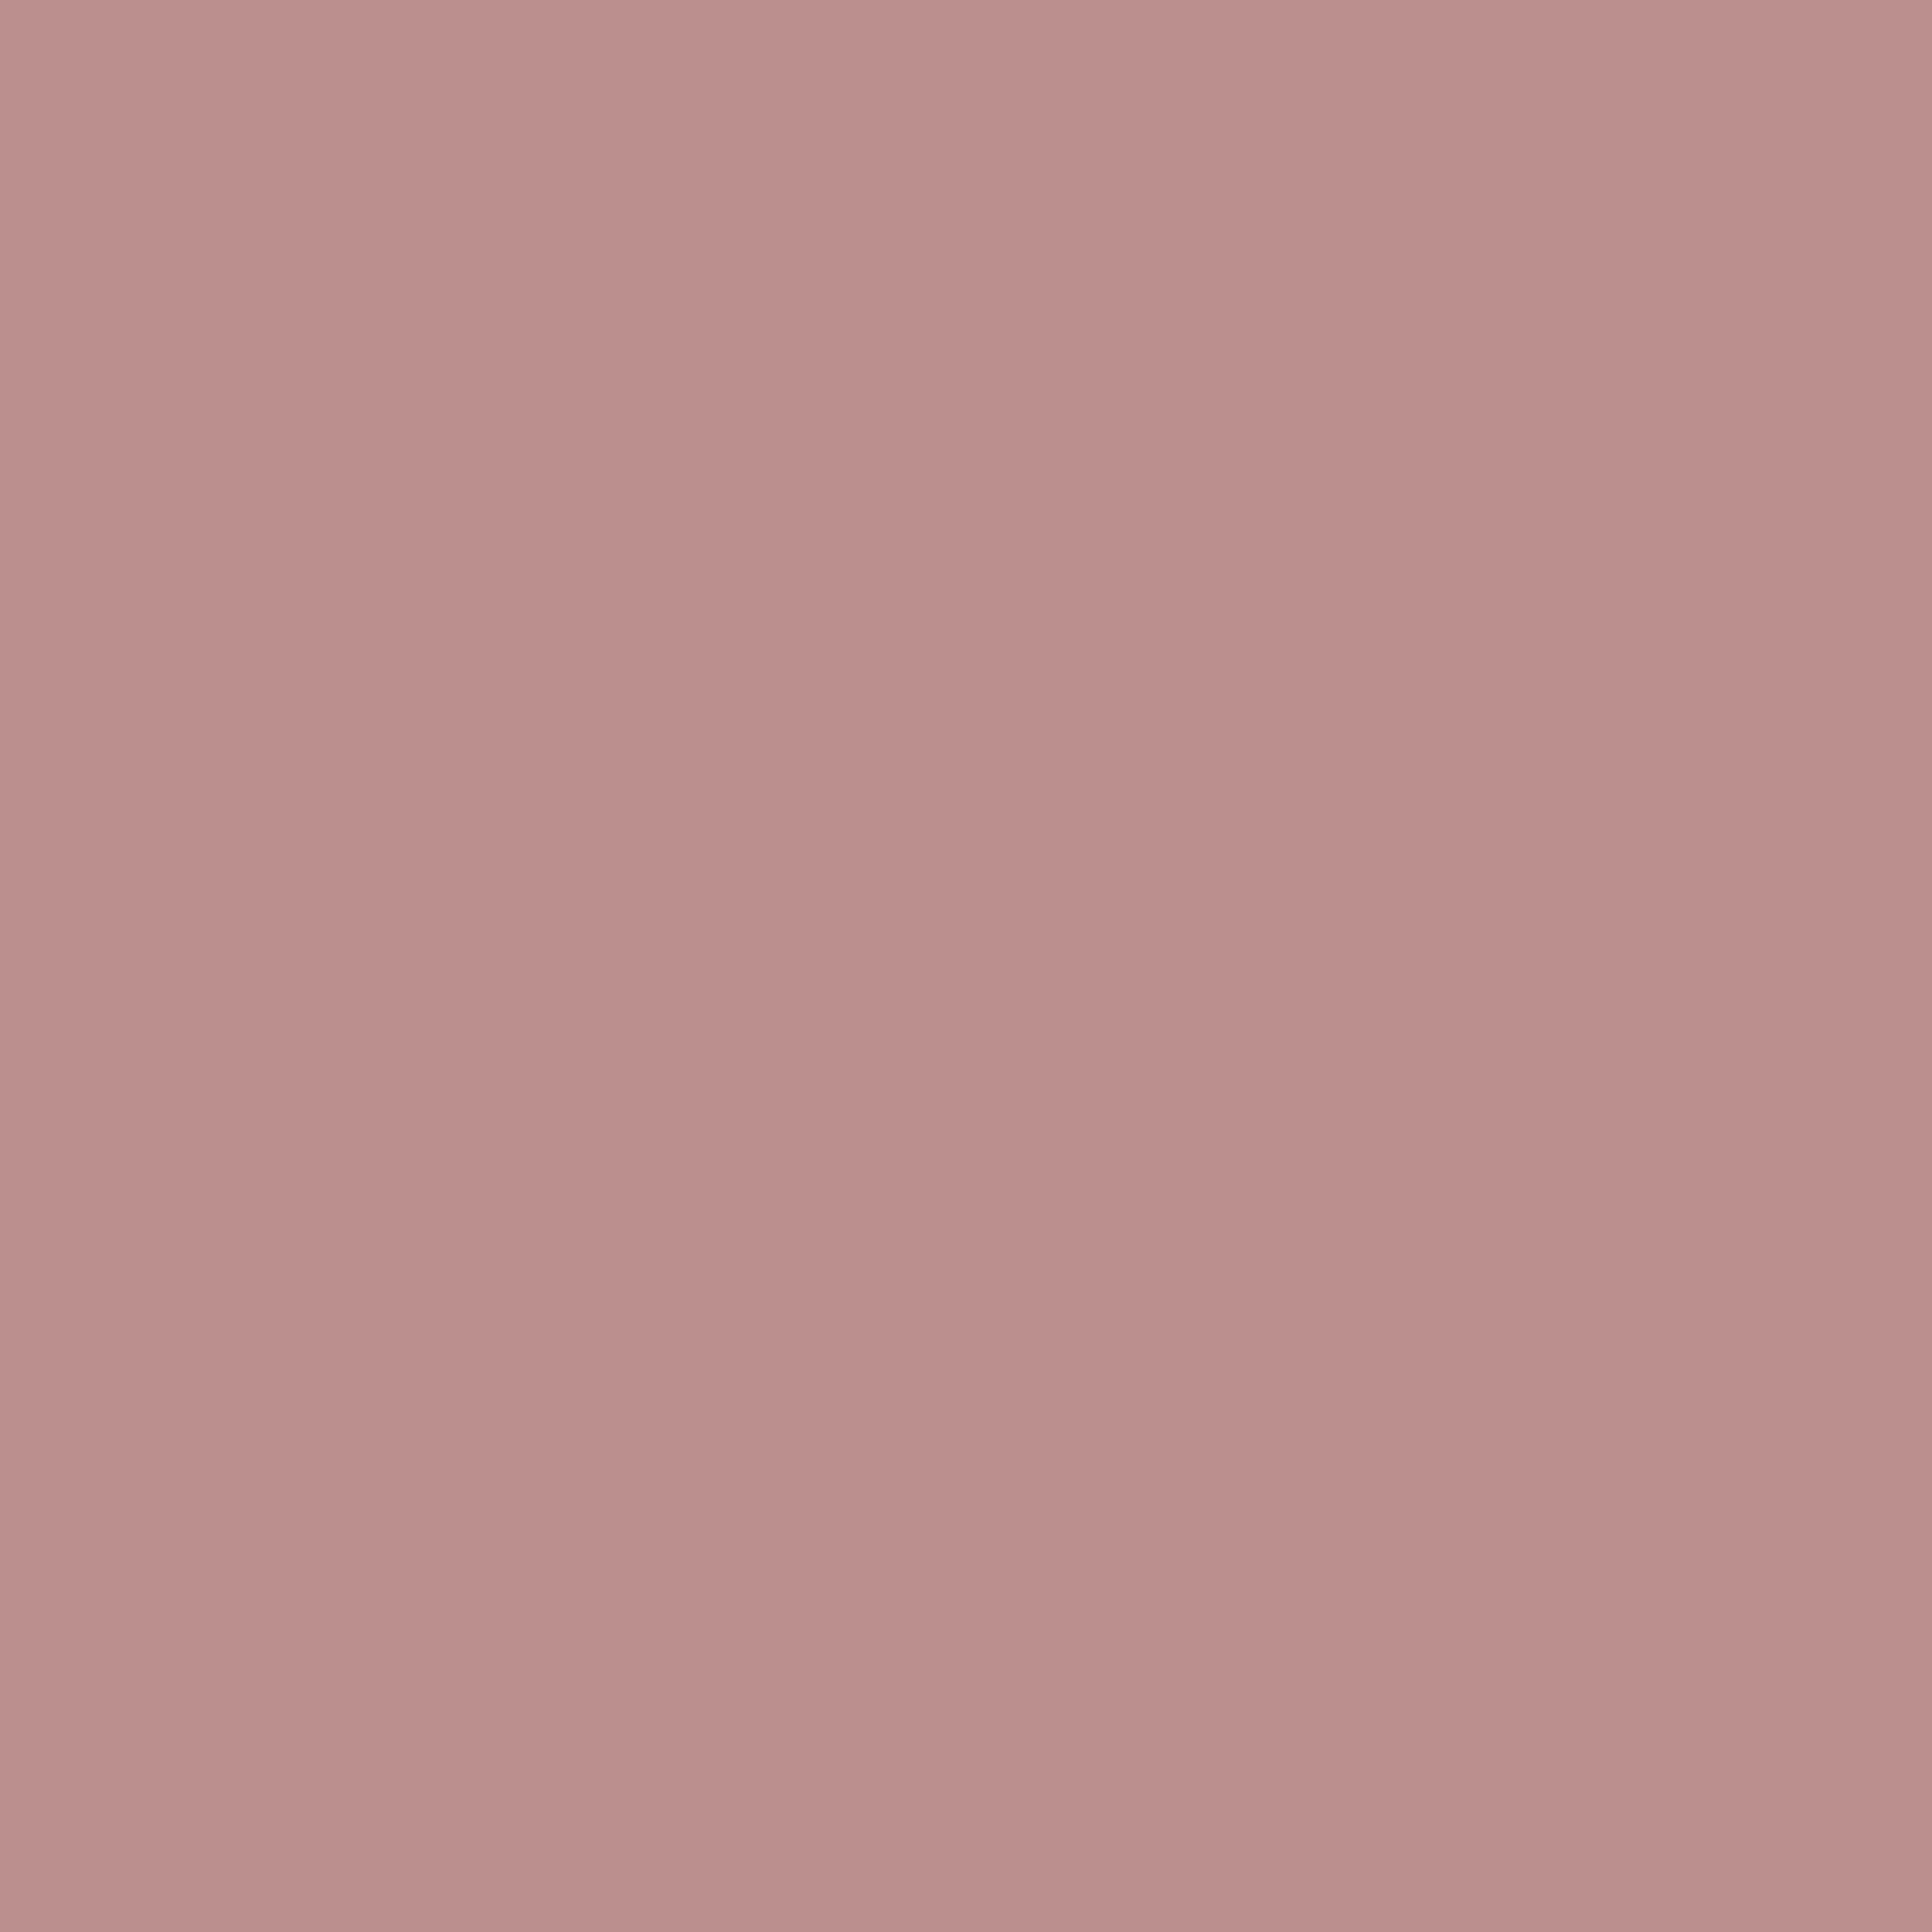 3600x3600 Rosy Brown Solid Color Background